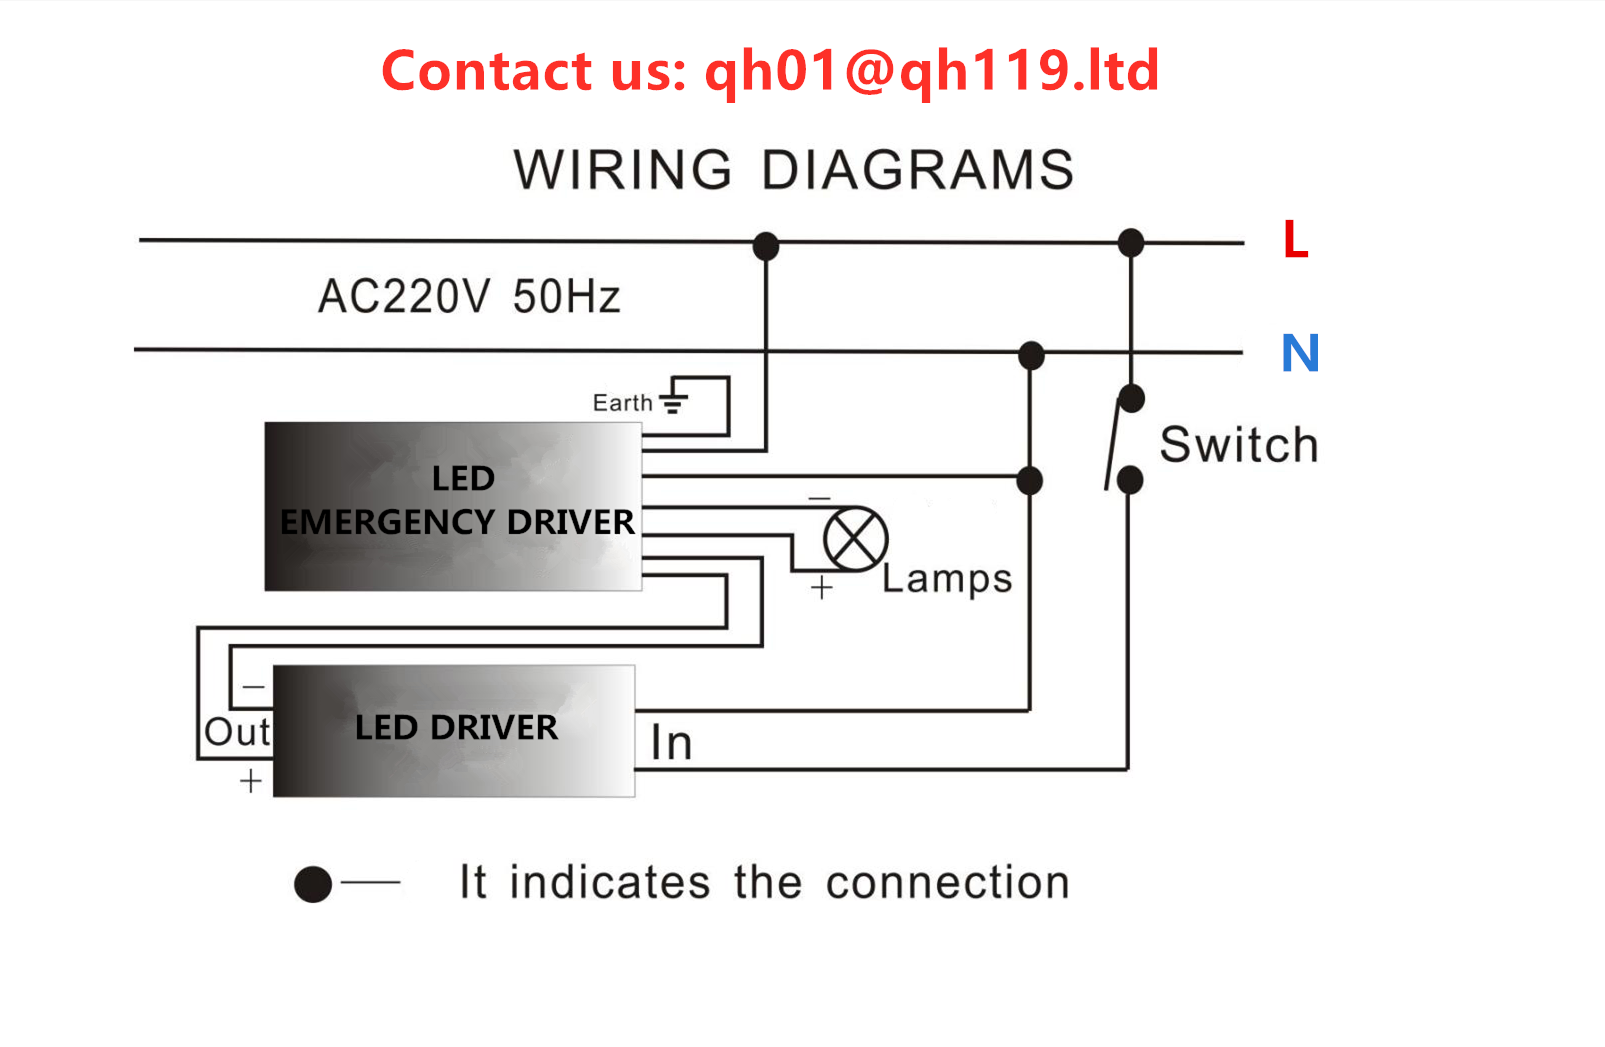 FAT-LED-F1A WIRING.png